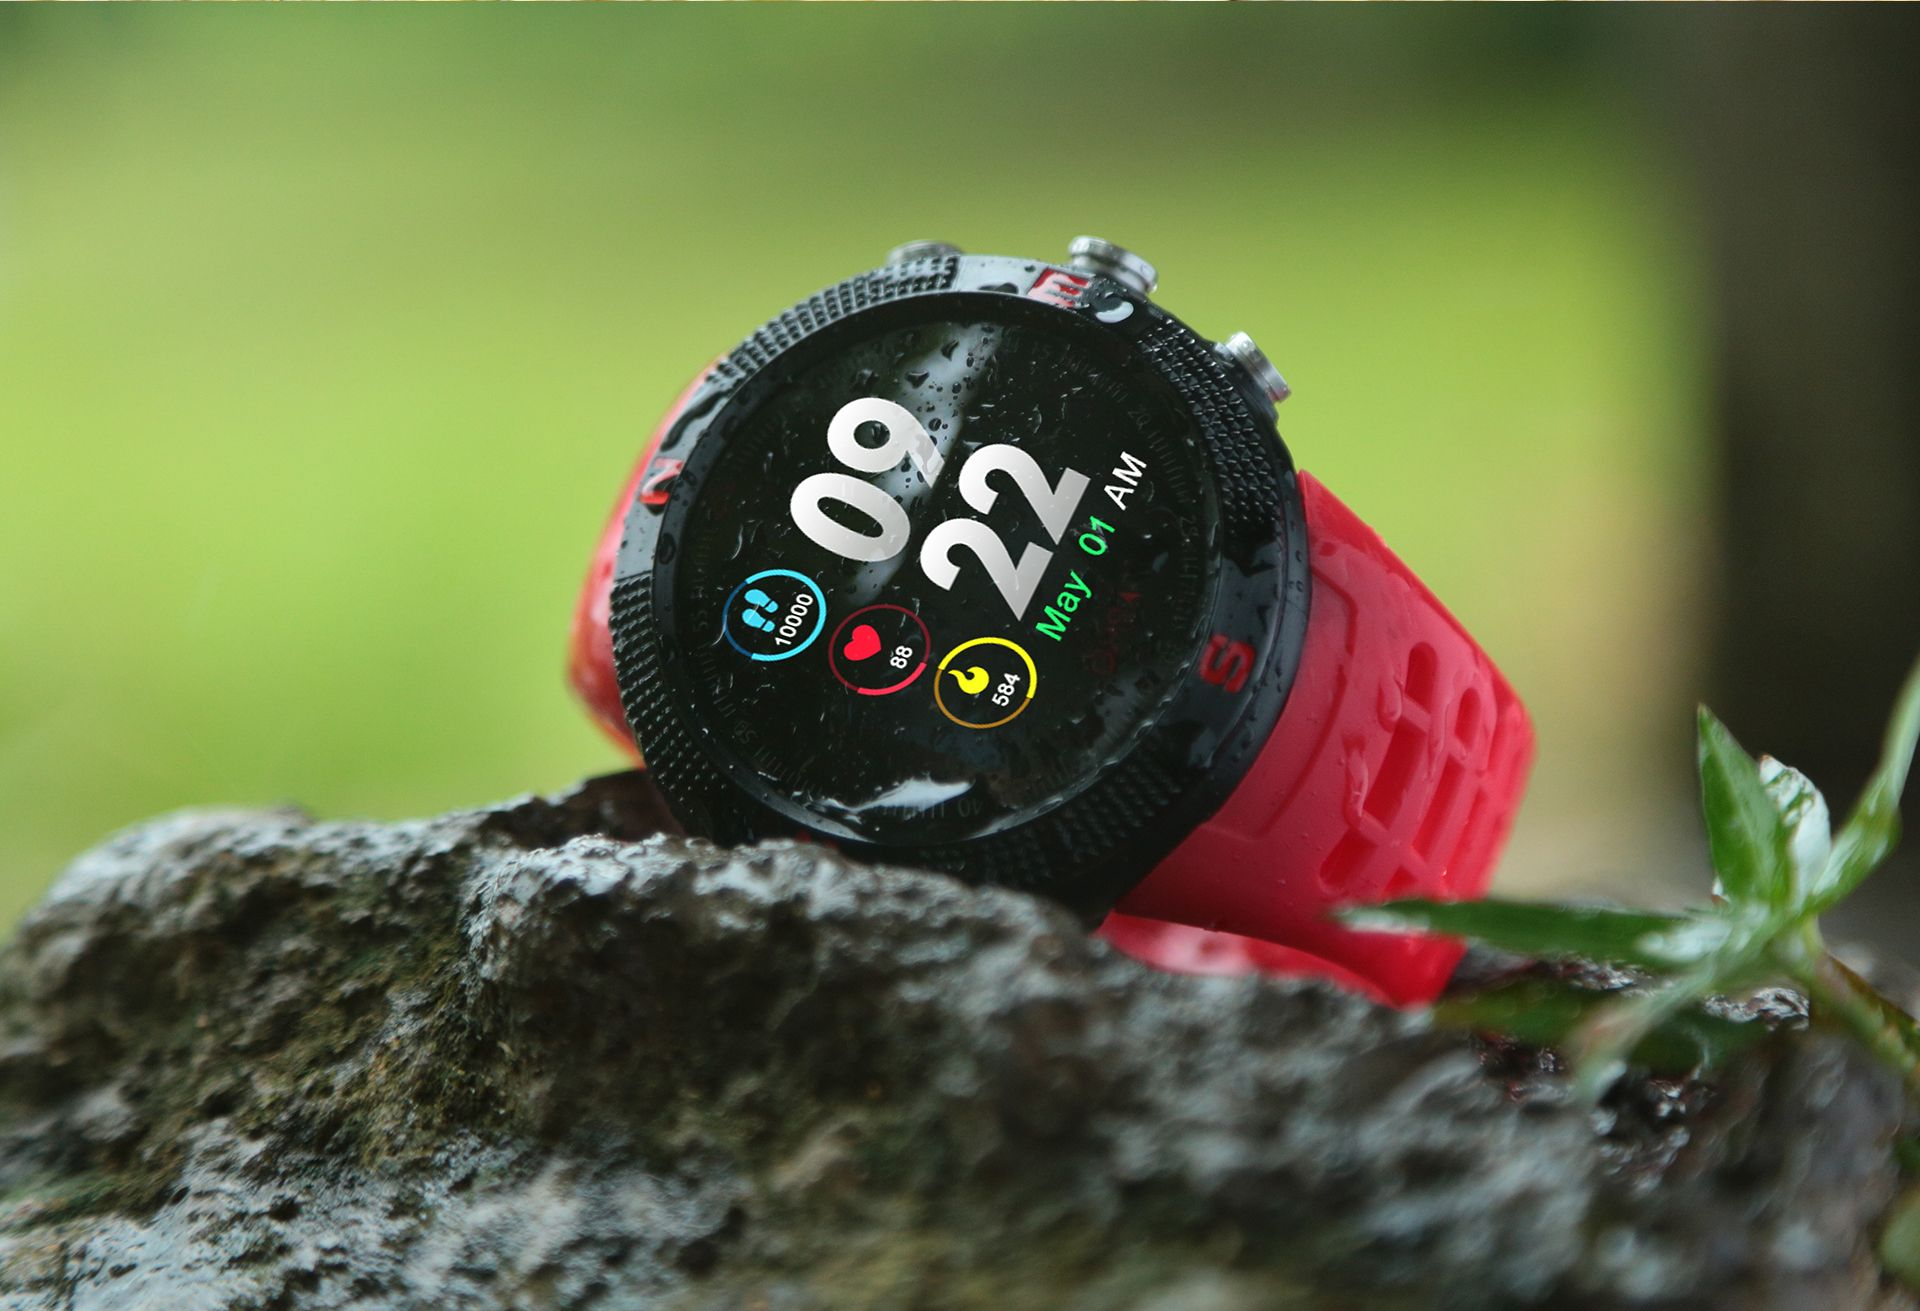 No 1 F18 Smartwatch Built In Gps It Can Support Ip68 Waterproof And Under The 100 Meters Water First 3d Sapphire Ball Mi Smart Watch Best Smart Watches Flash